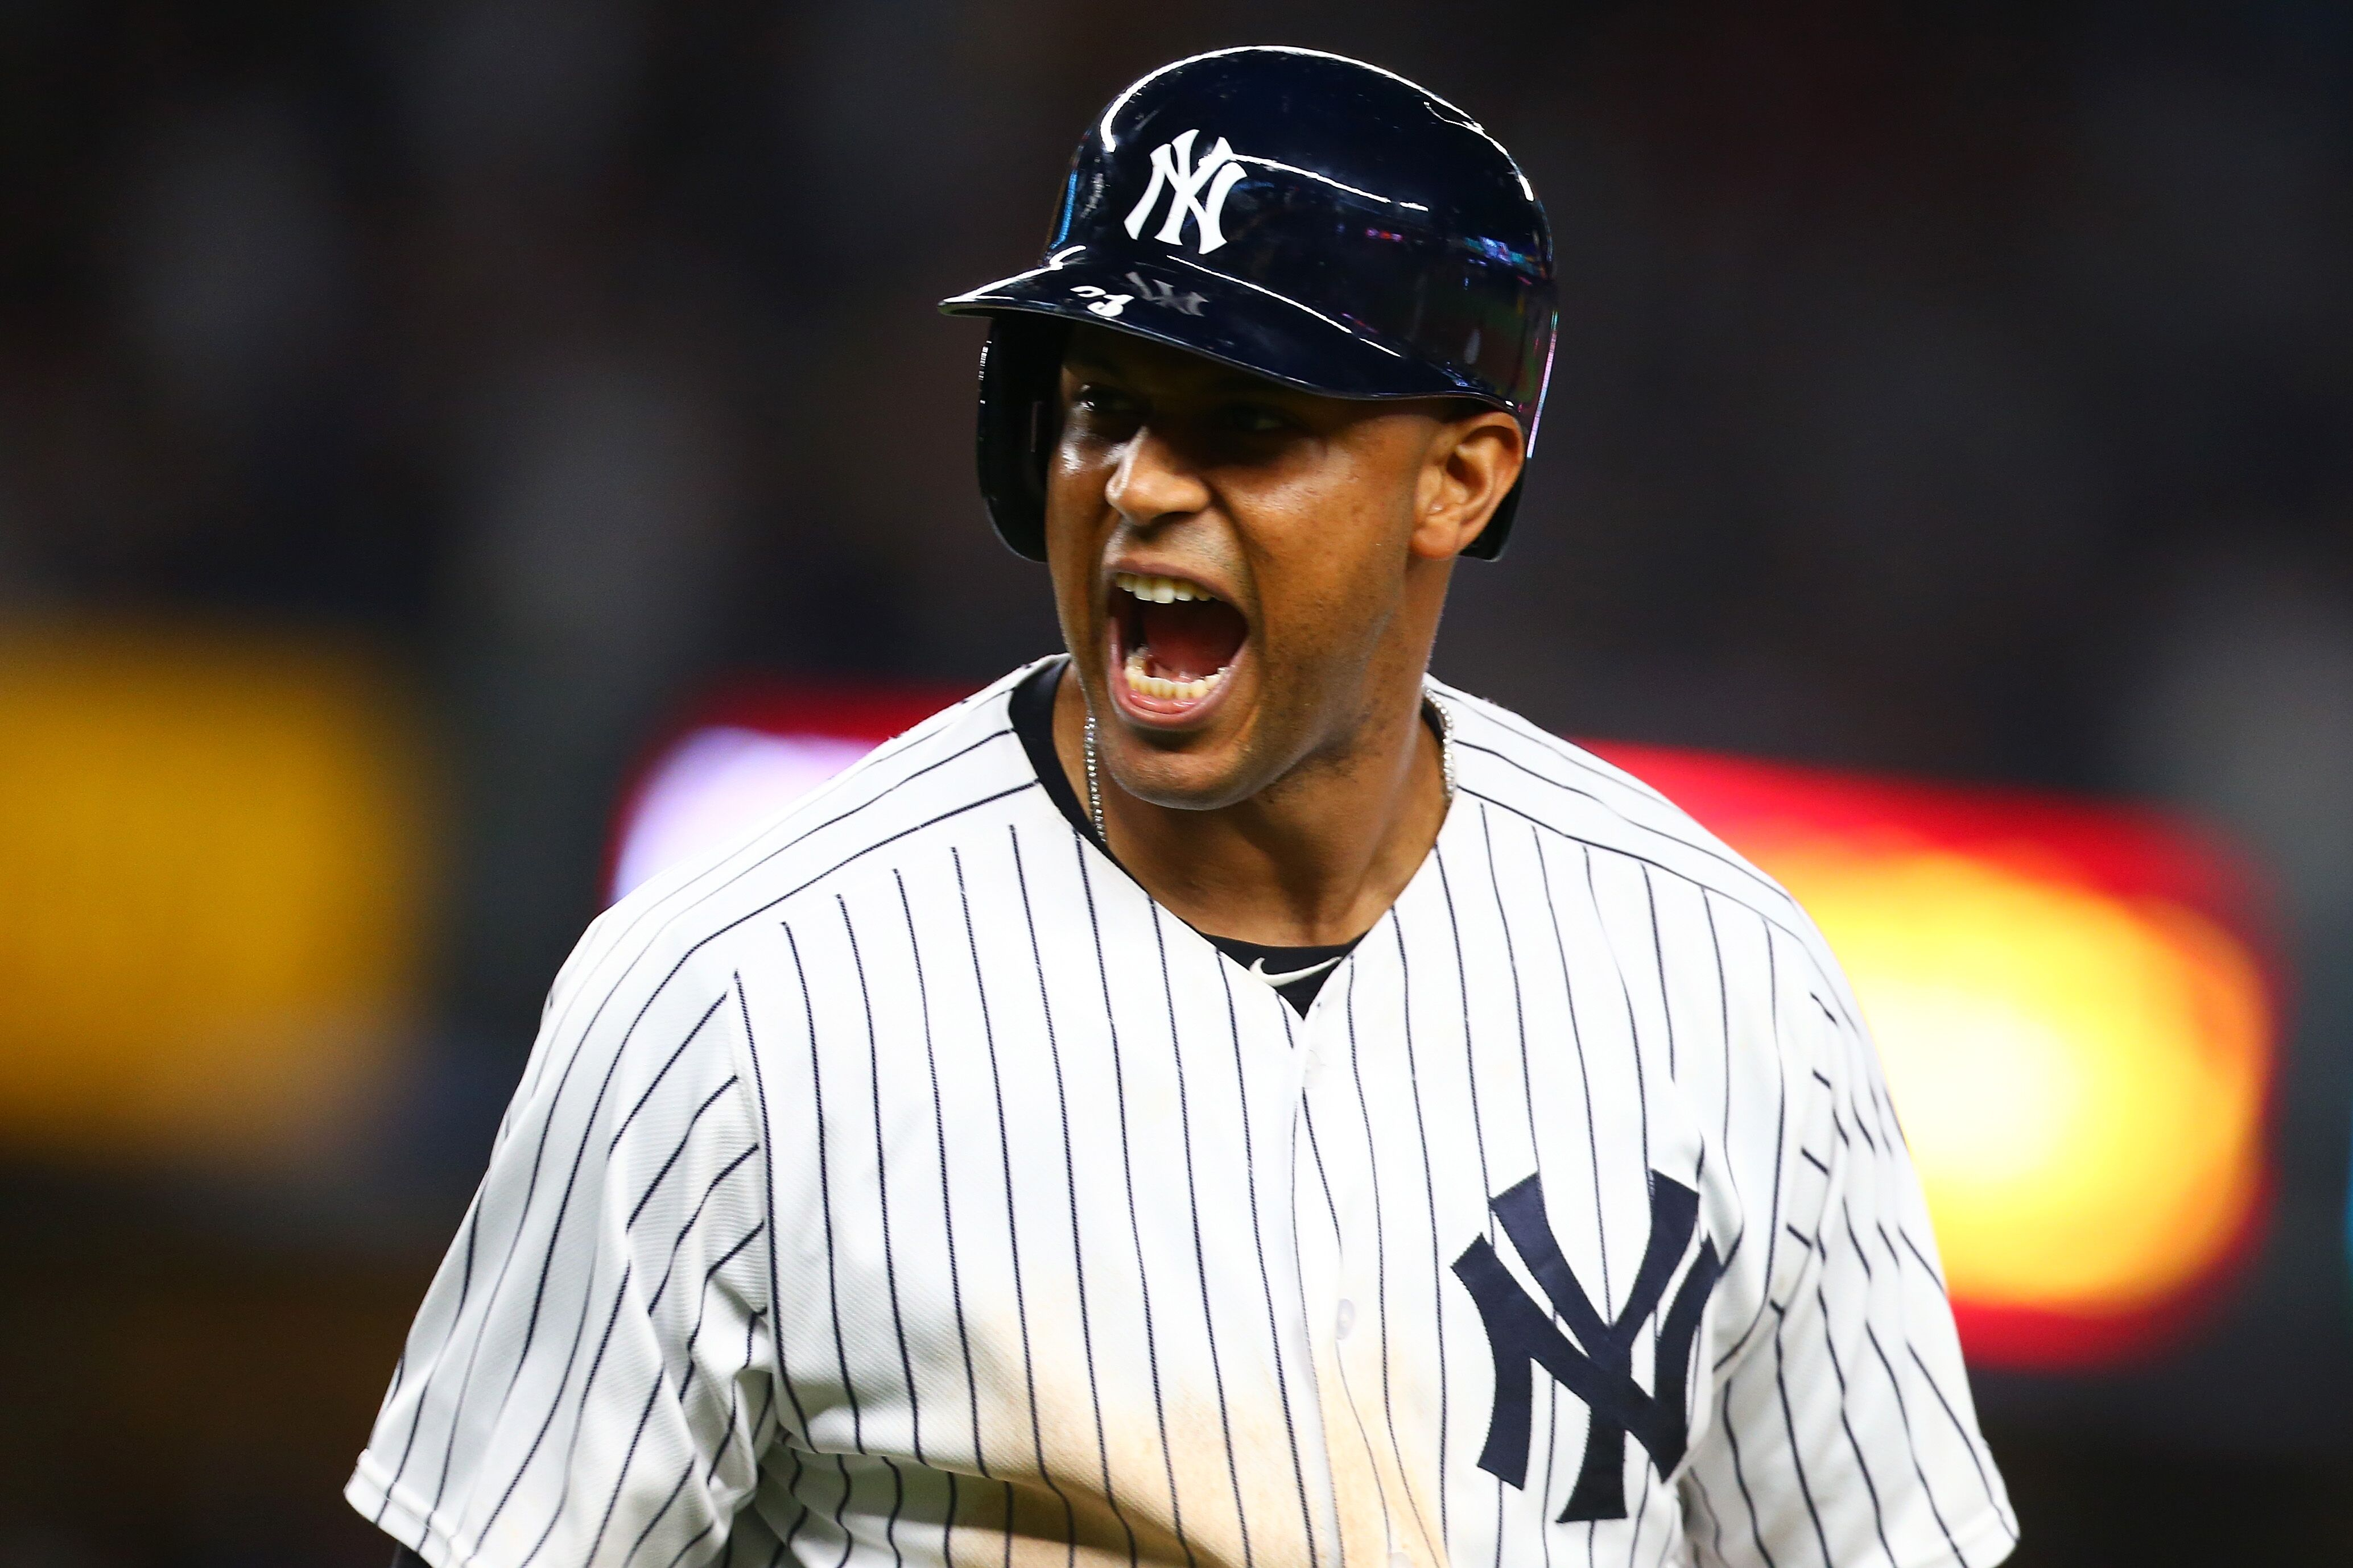 Yankees: Hicks injects a dose of energy as Bombers rally for win